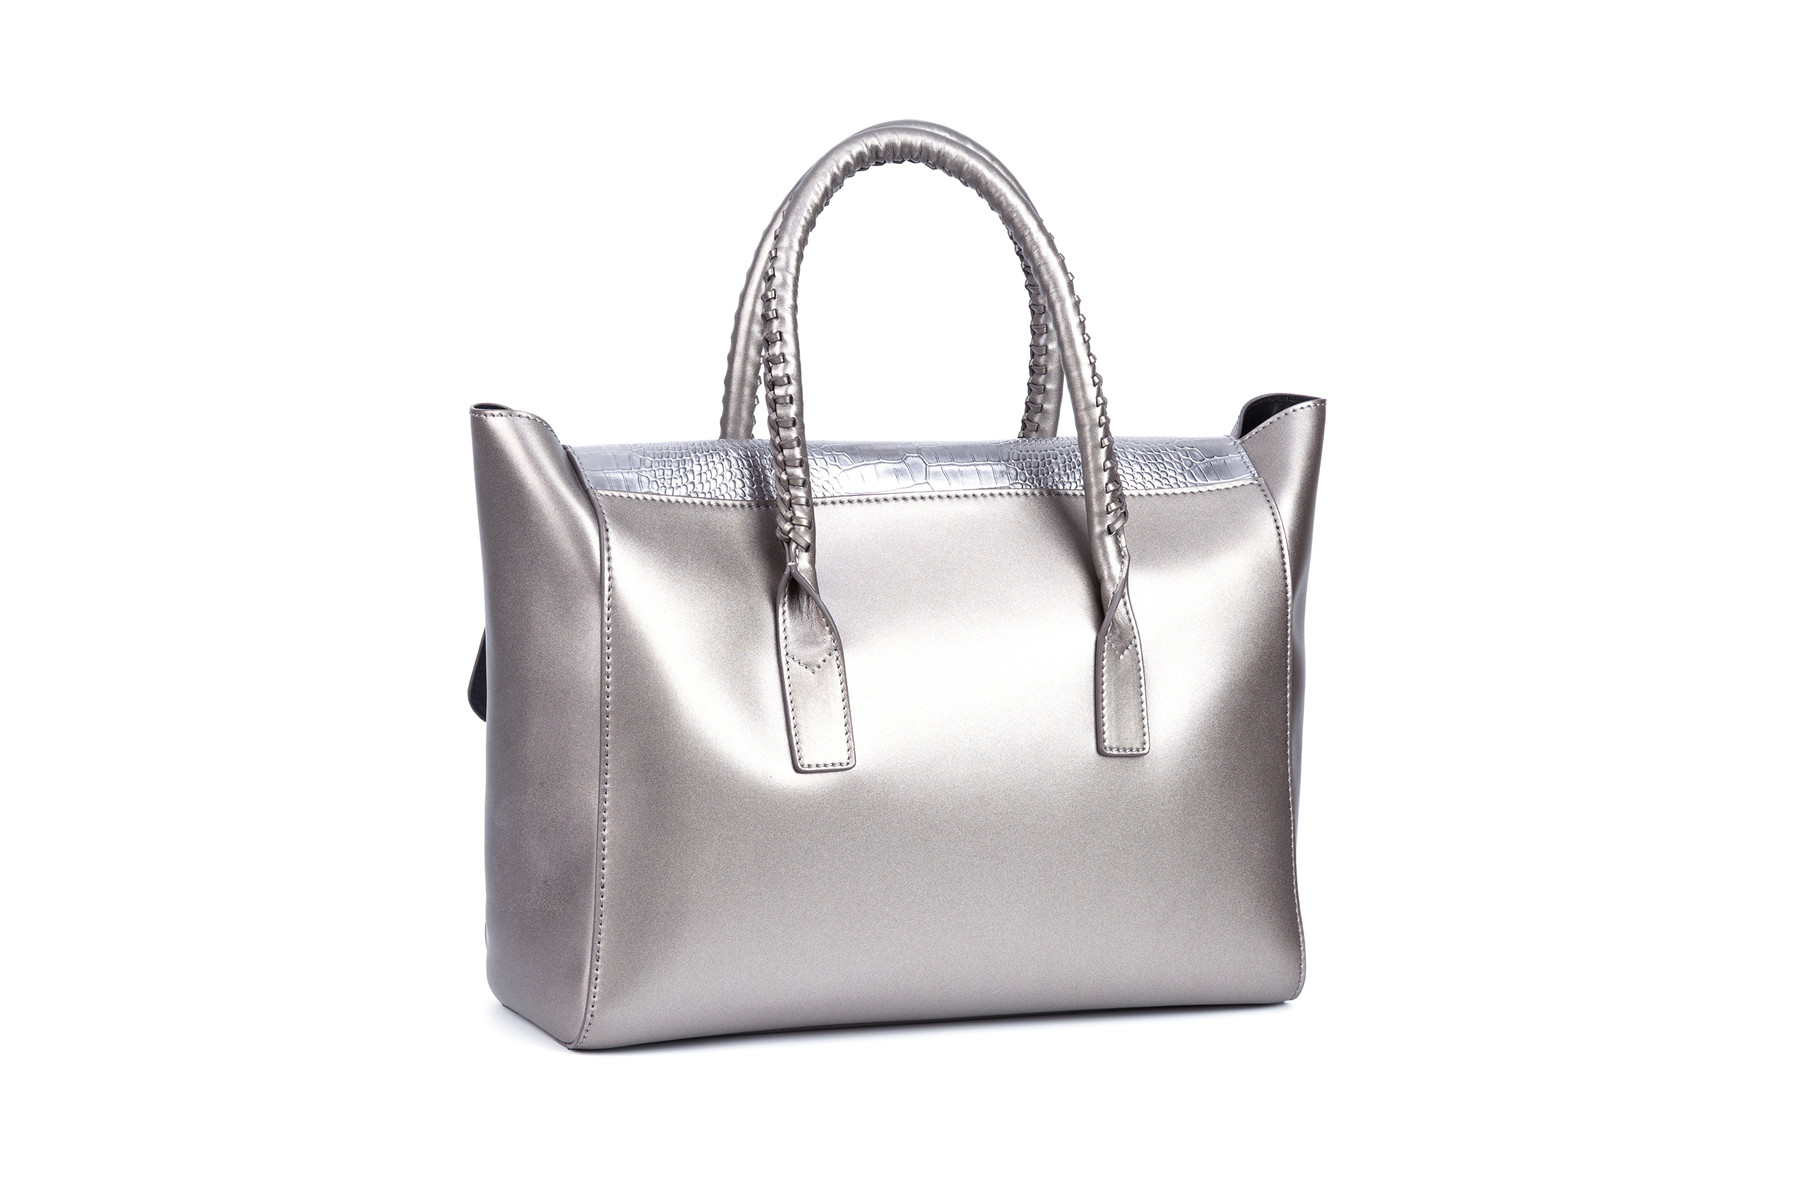 GF bags-Bulk Luxury Handbags Manufacturer, Affordable Handbags | Gf Bags-2